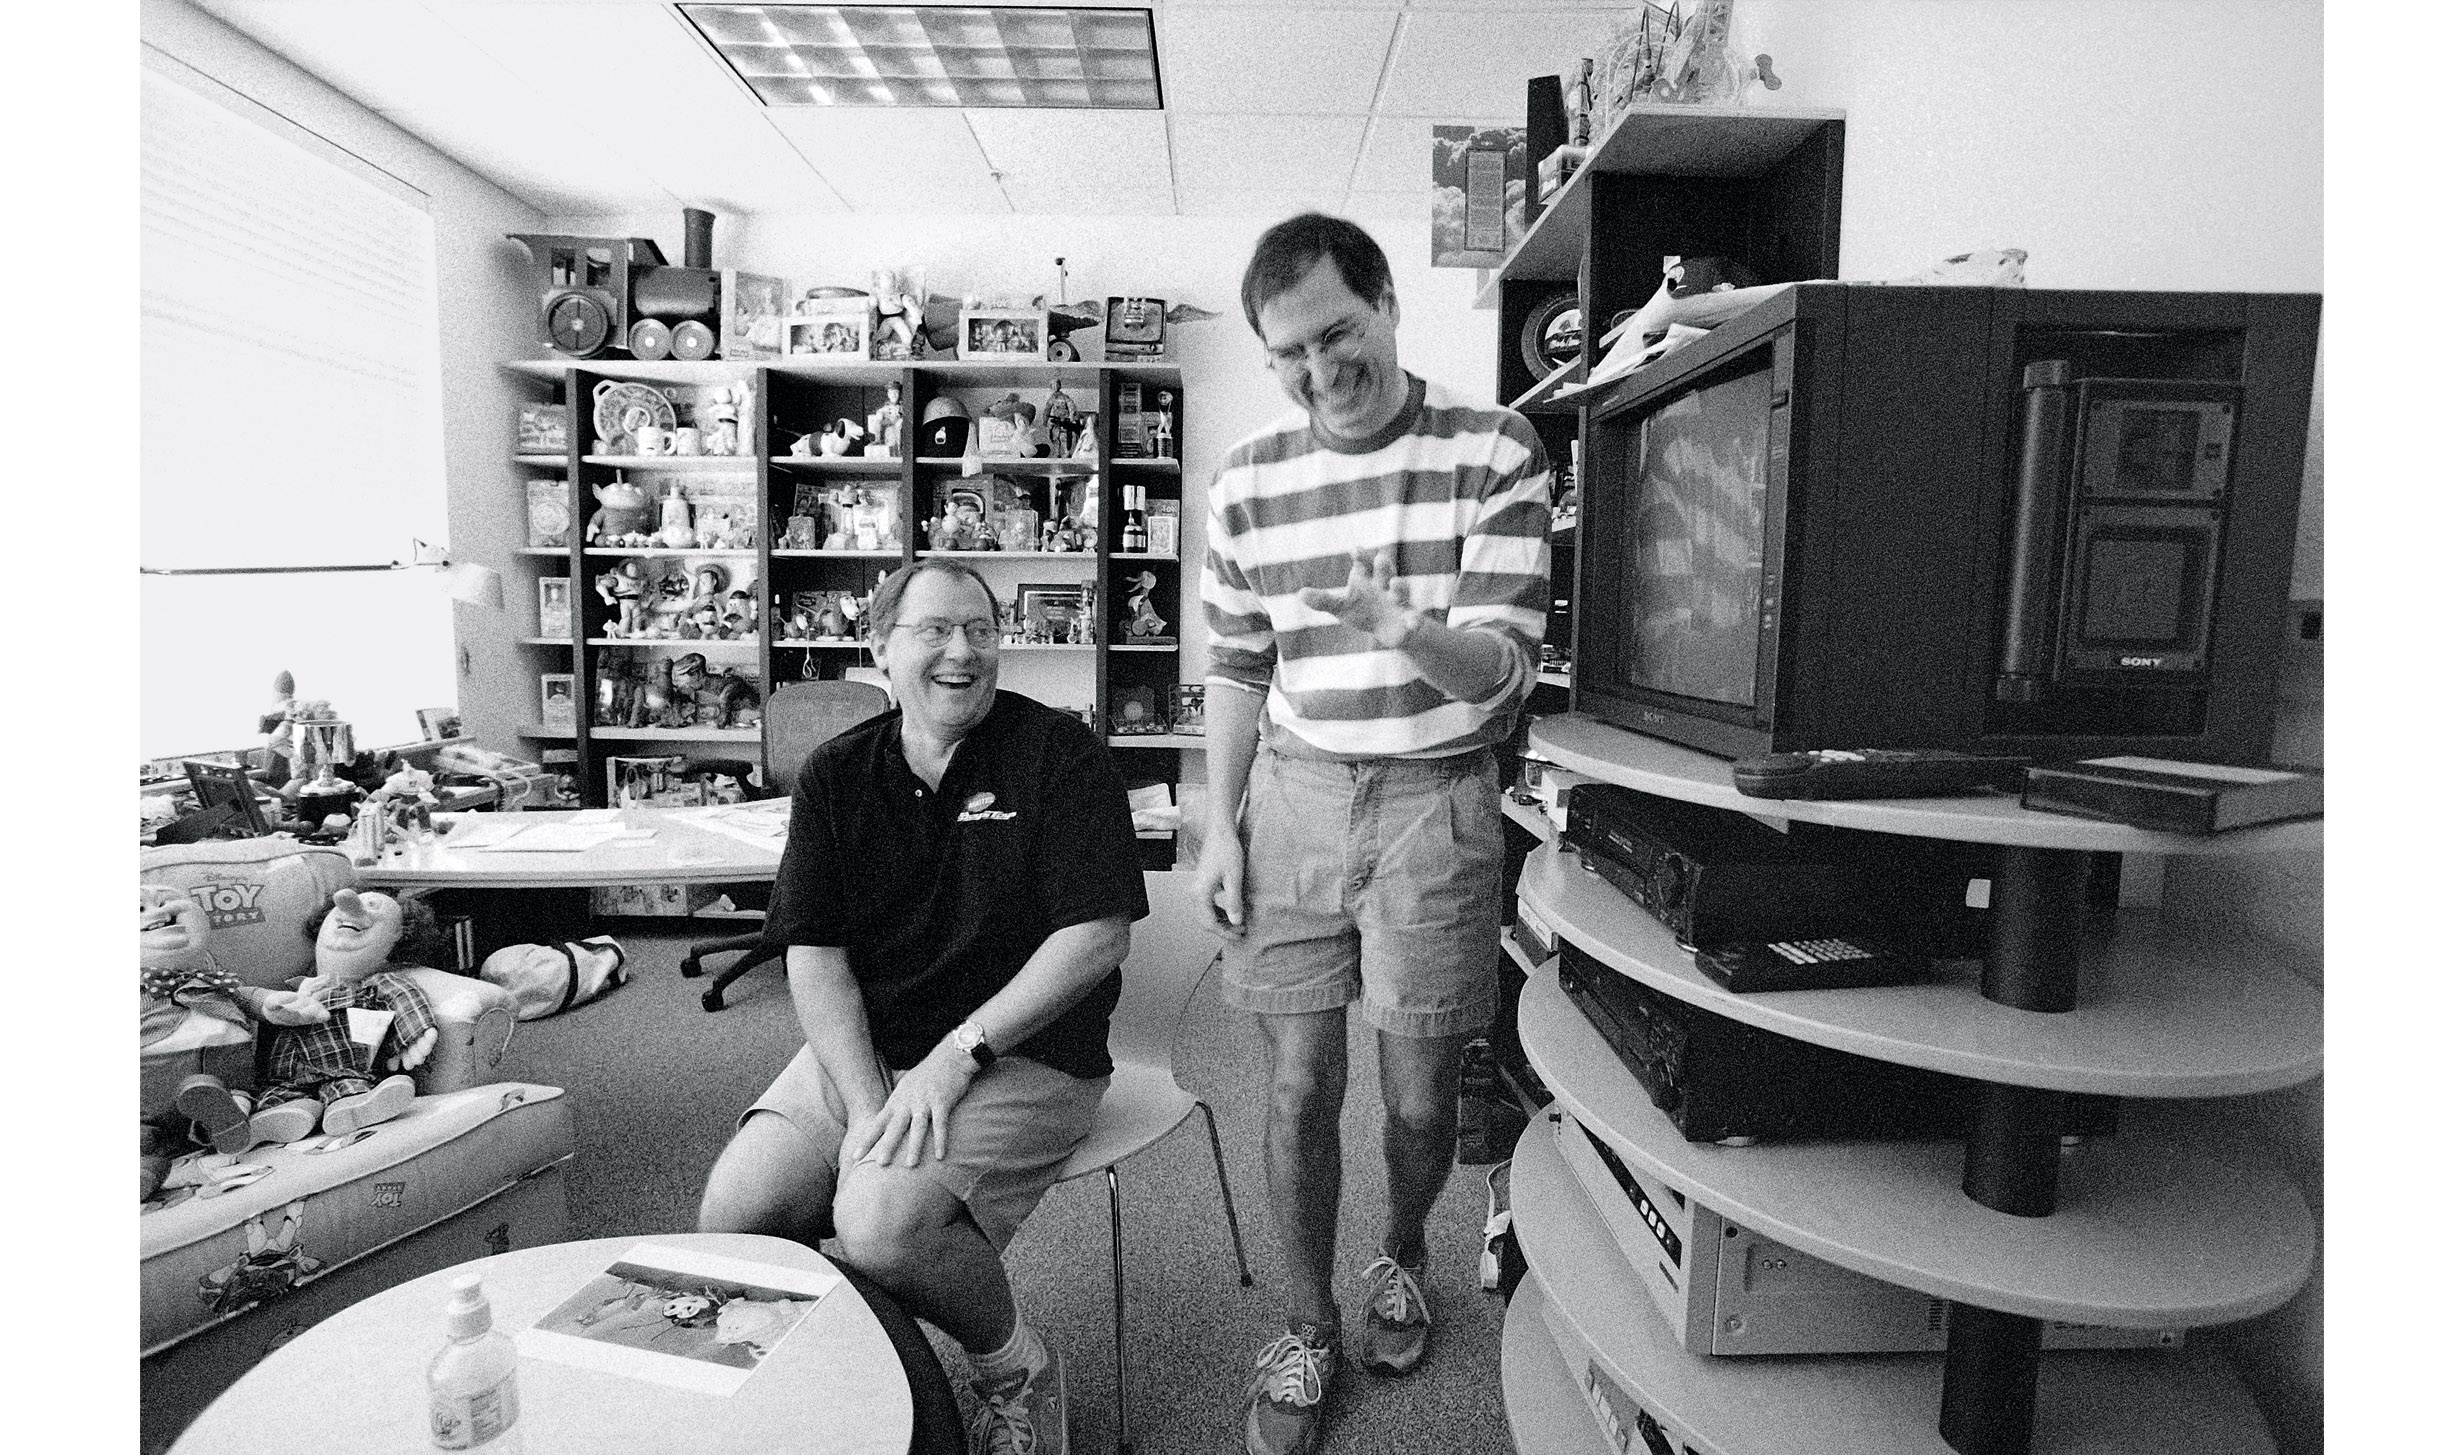 Jobs laughs with Chief Creative Officer John Lasseter in the latter's office at Pixar in August 1997.